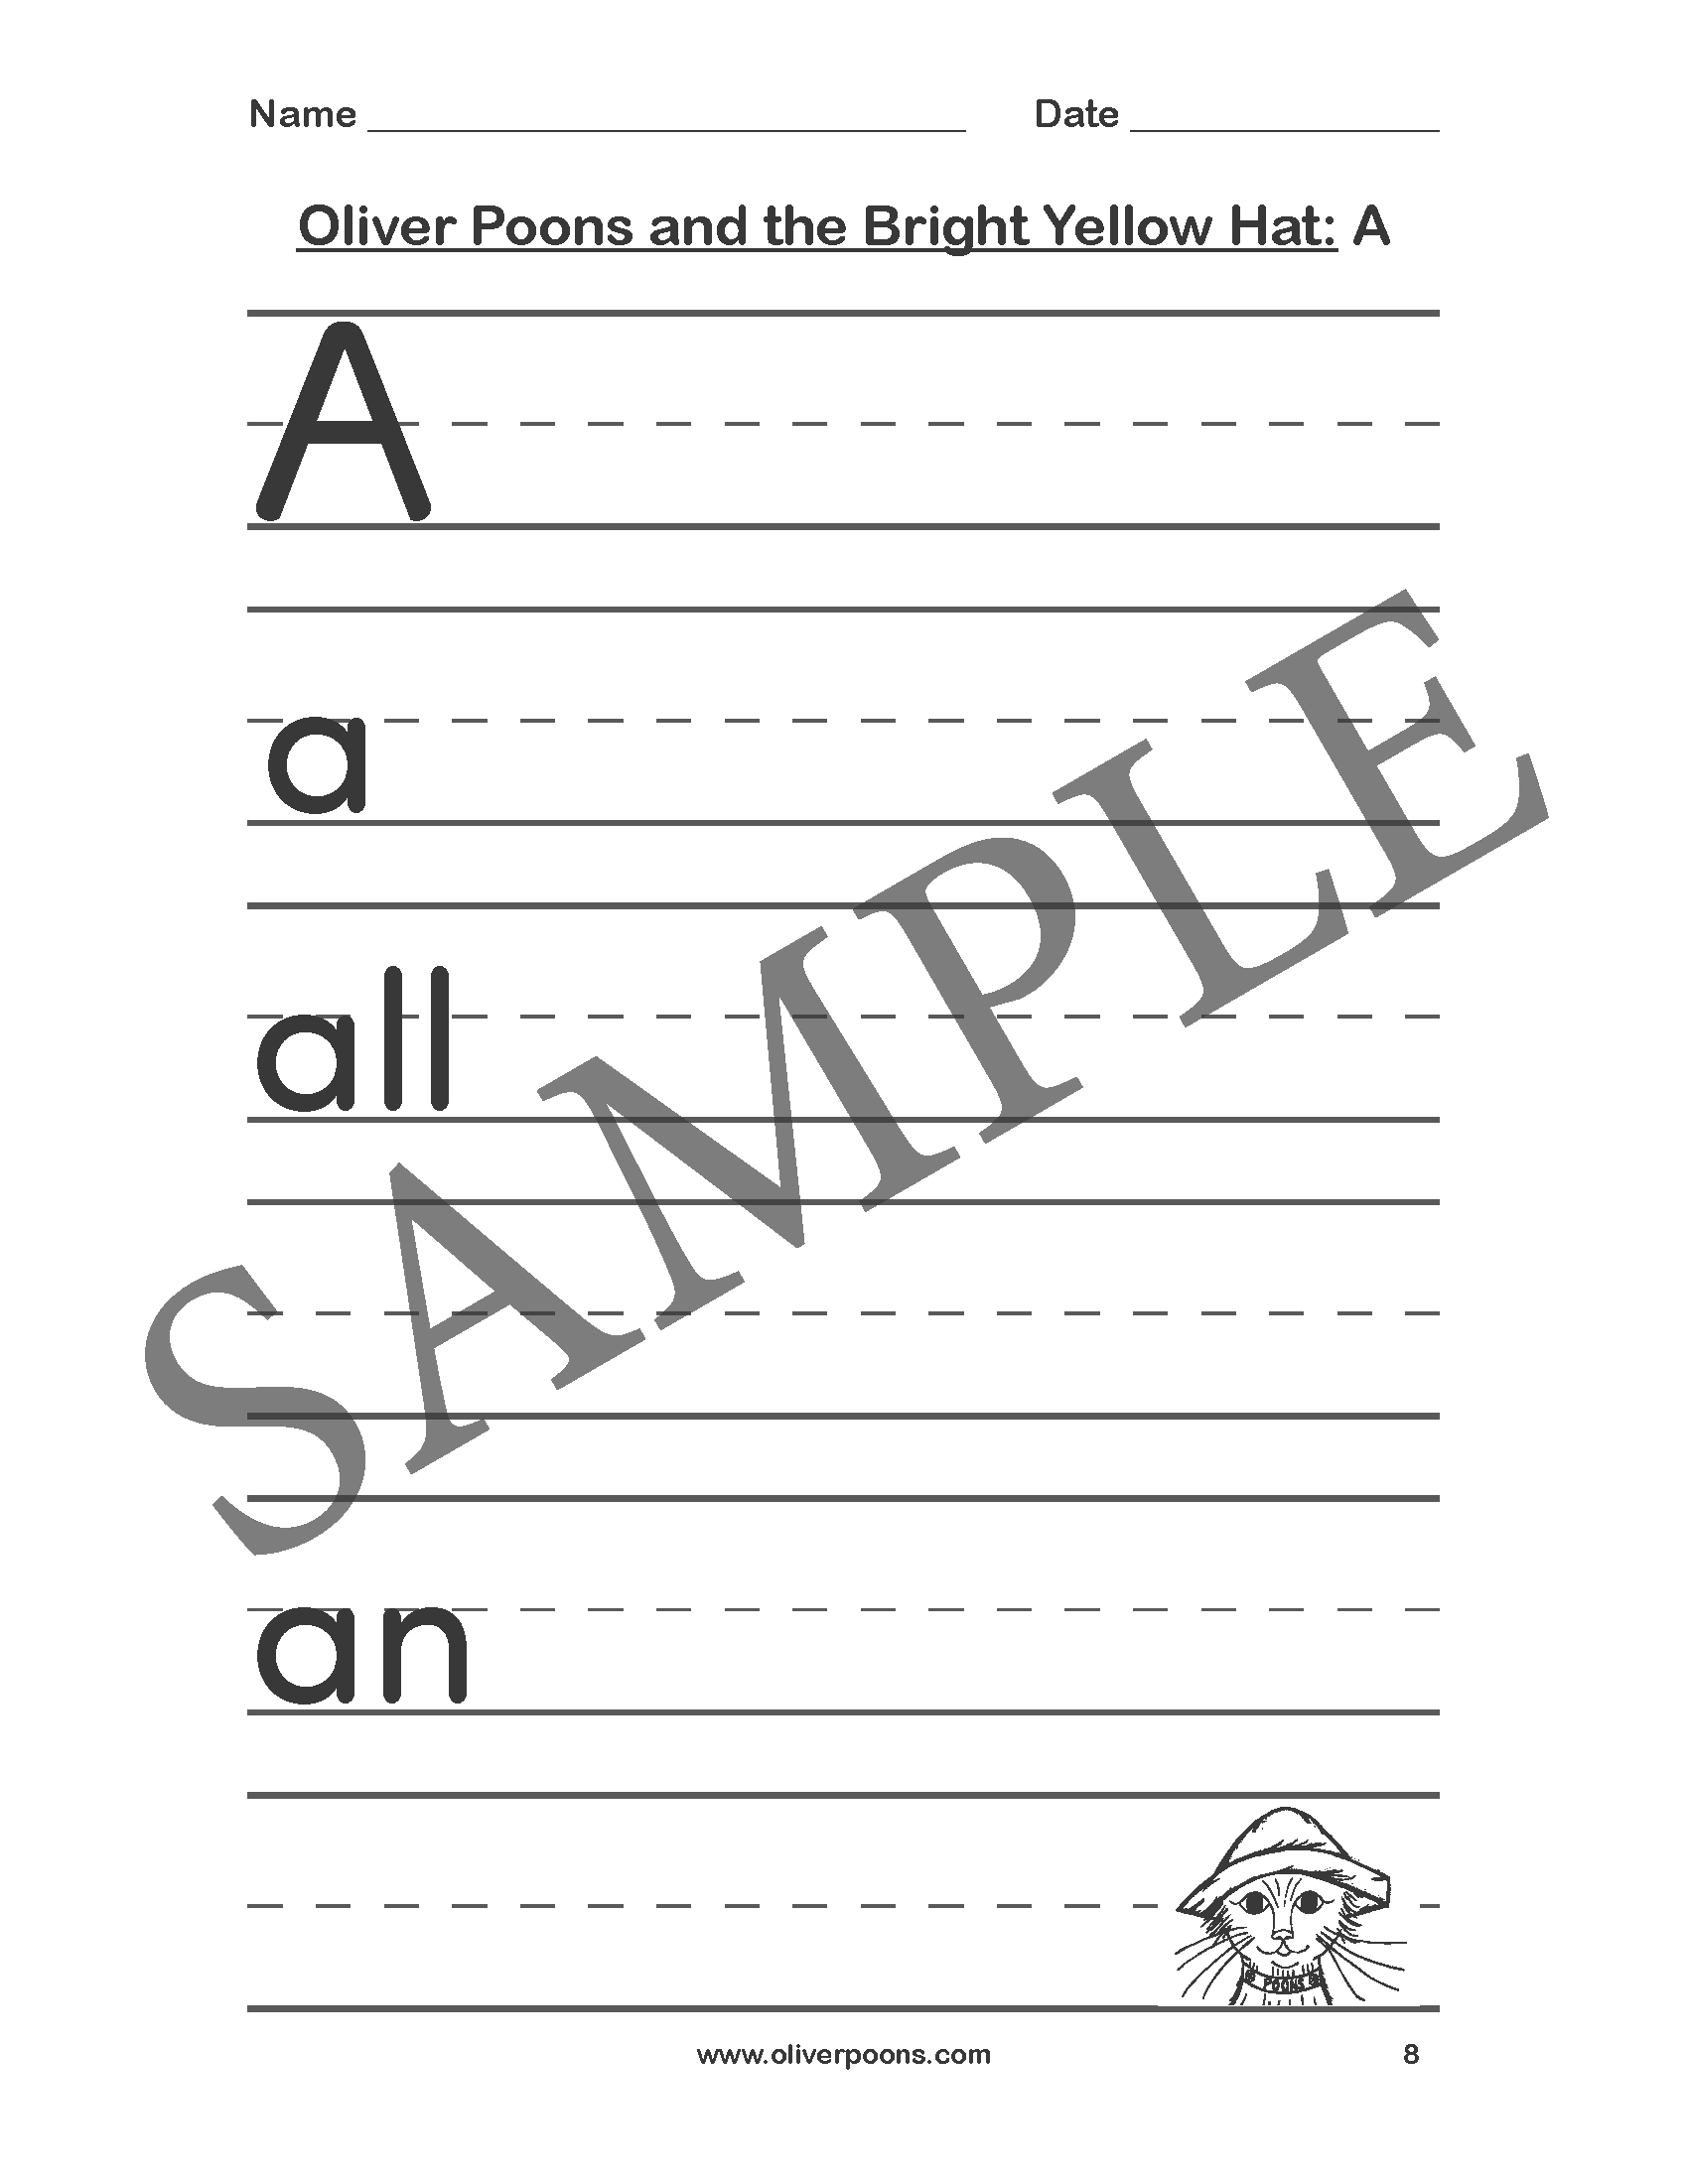 Oliver Poons Worksheets And Activities Pre K Through Grade 2